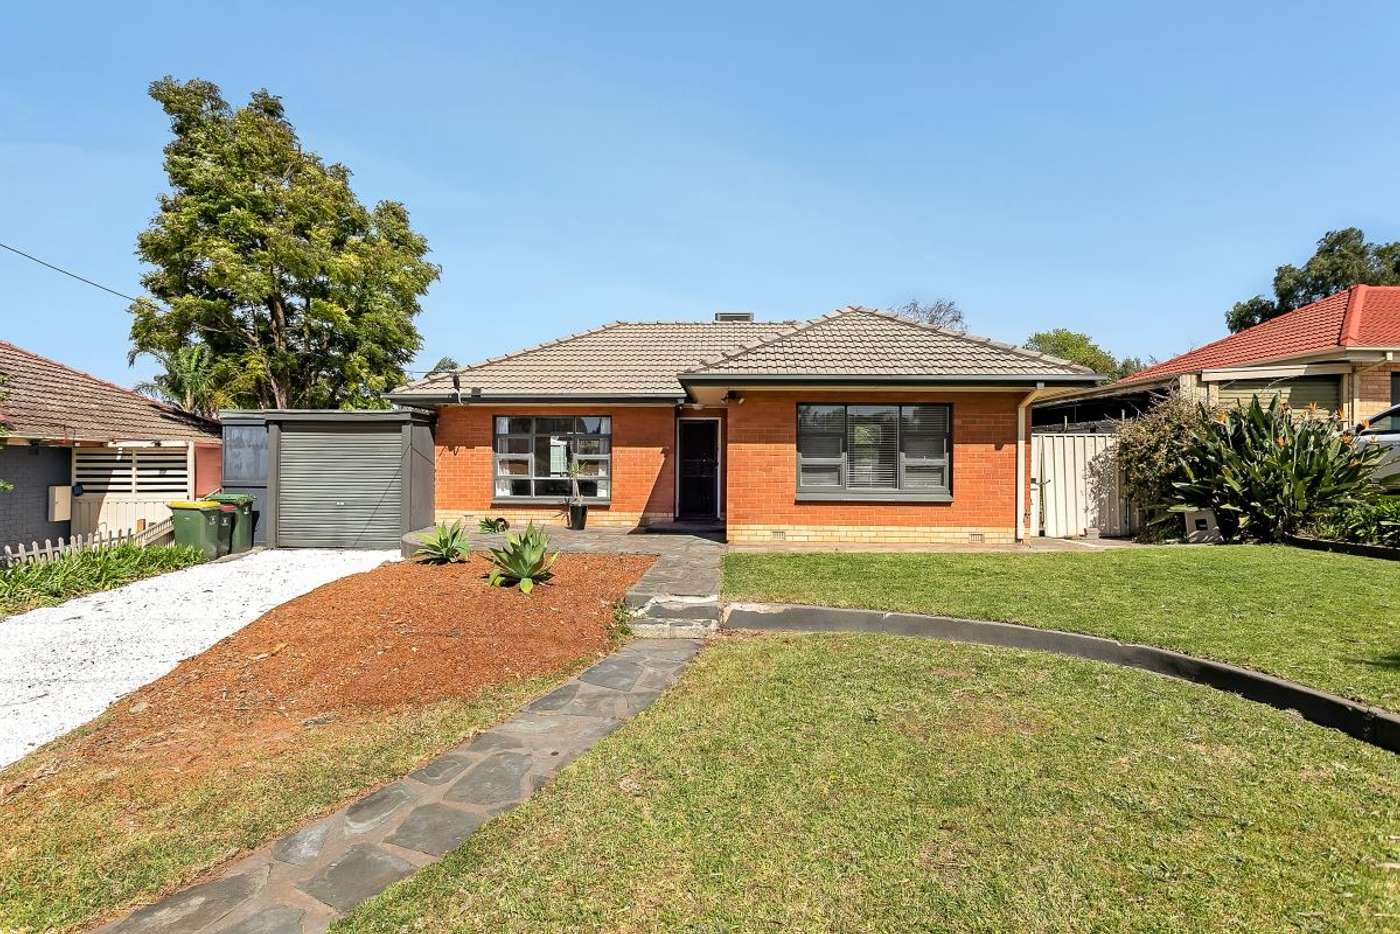 Main view of Homely house listing, 278 O'Sullivan Beach Road, Morphett Vale SA 5162